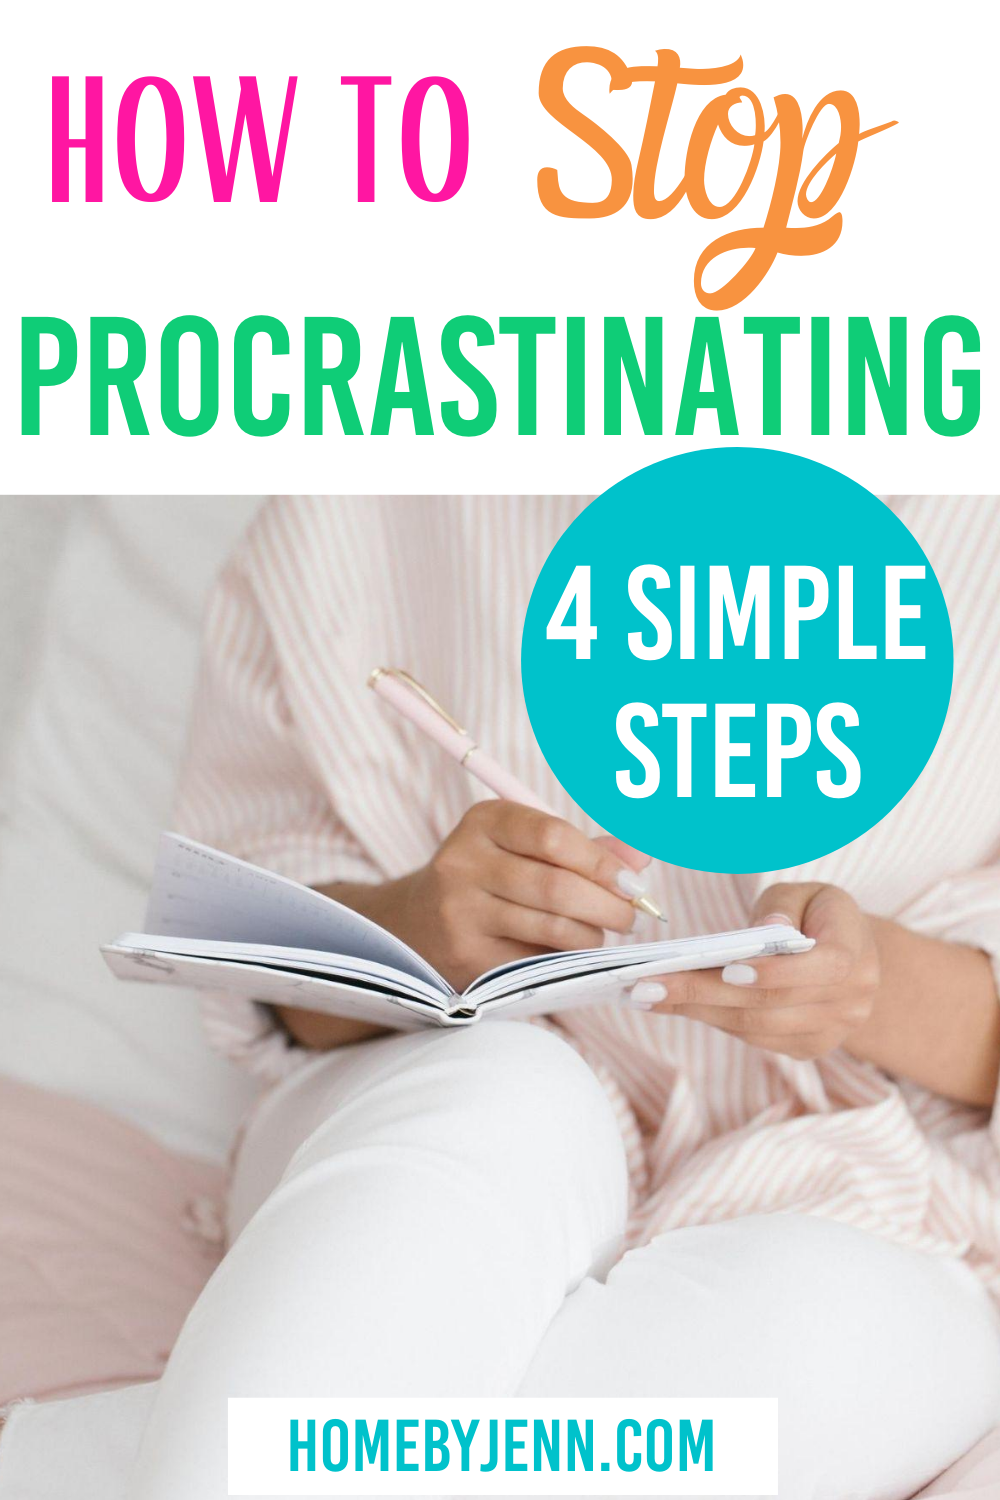 How to stop procrastinating by following these 4 simple time-saving tips #timesavingtips #procrastinating #timemanagement #timemanagementtips via @homebyjenn